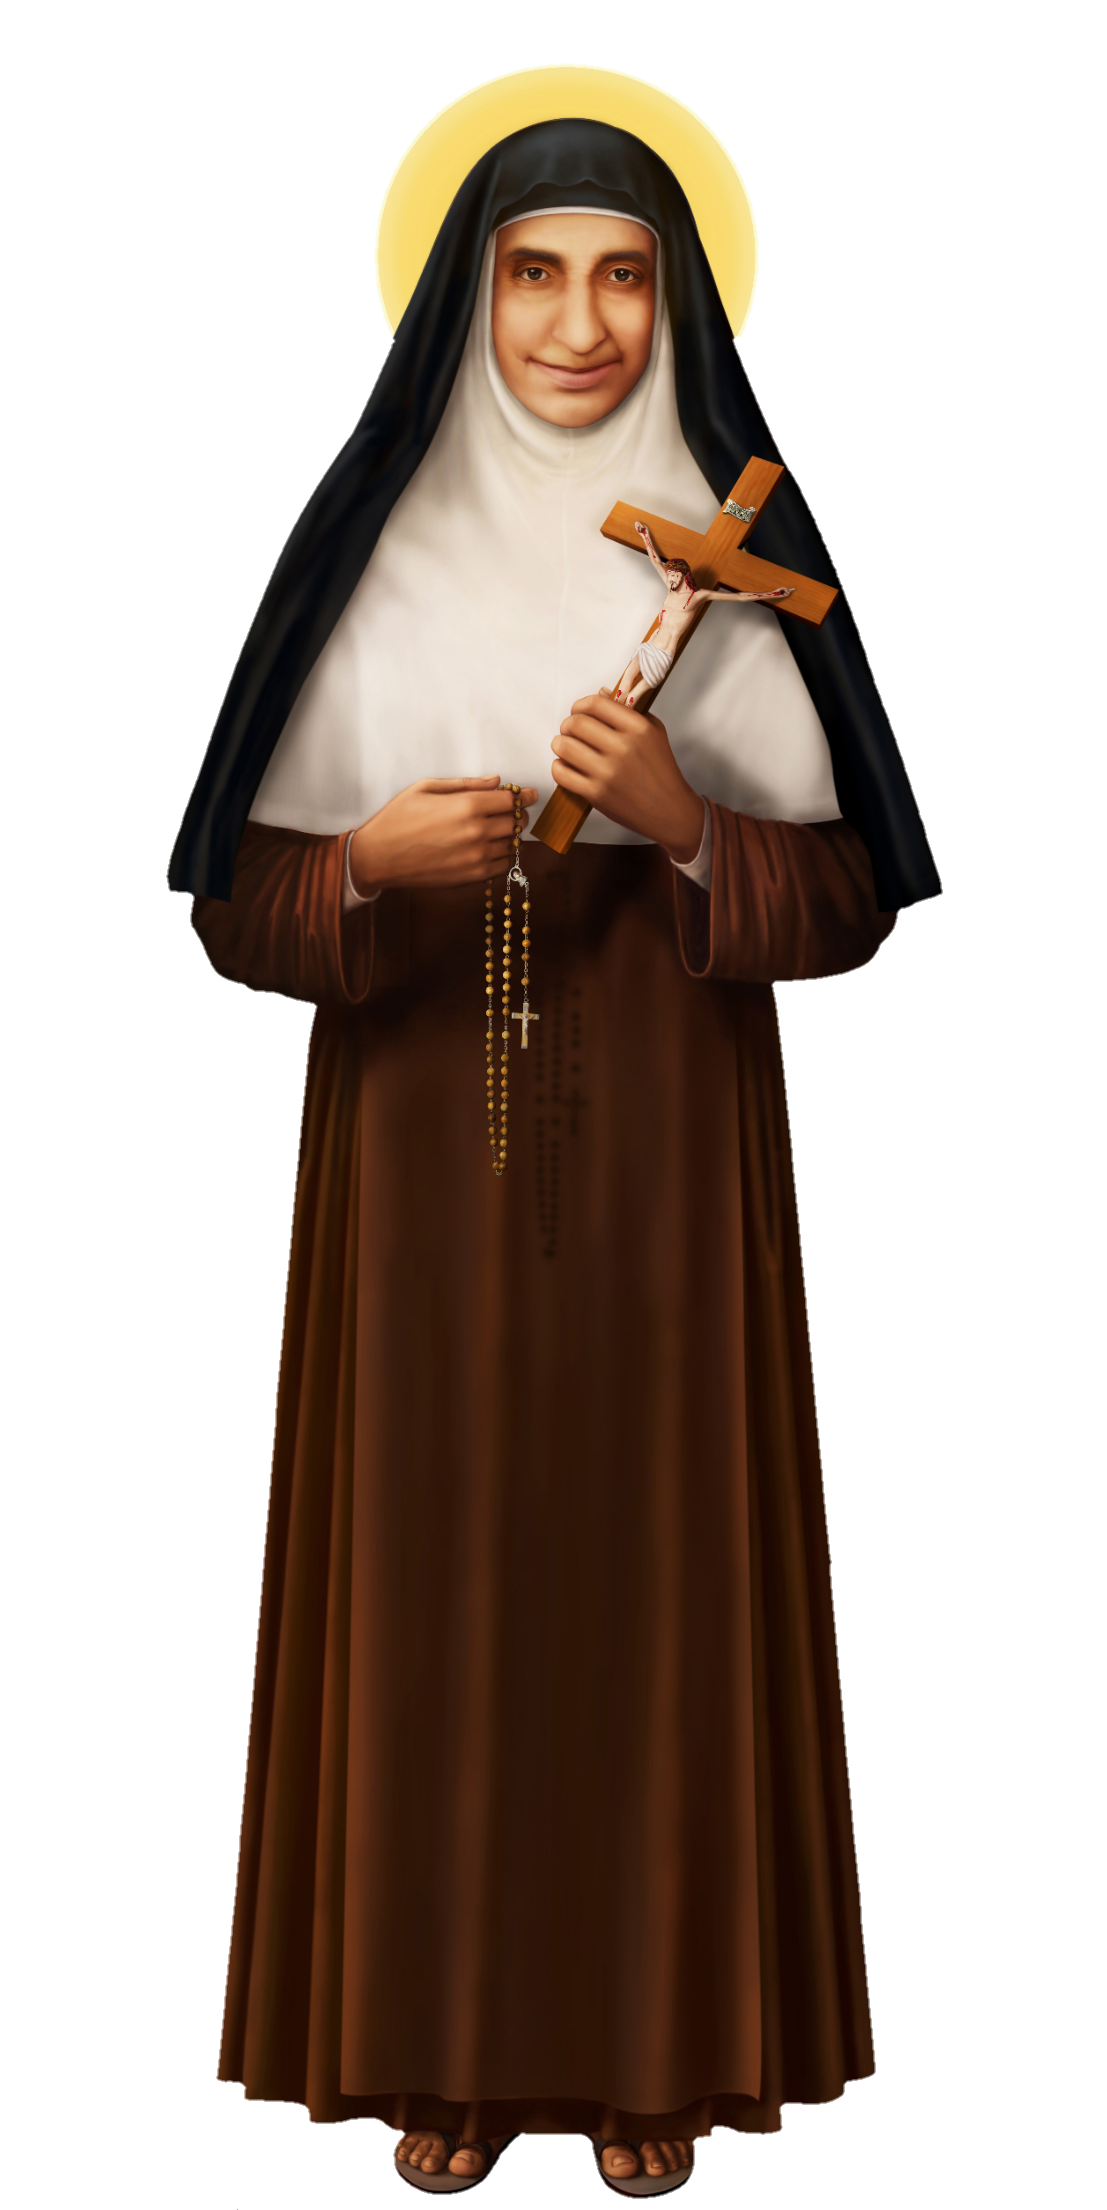 st-euphrasia-august-29-png